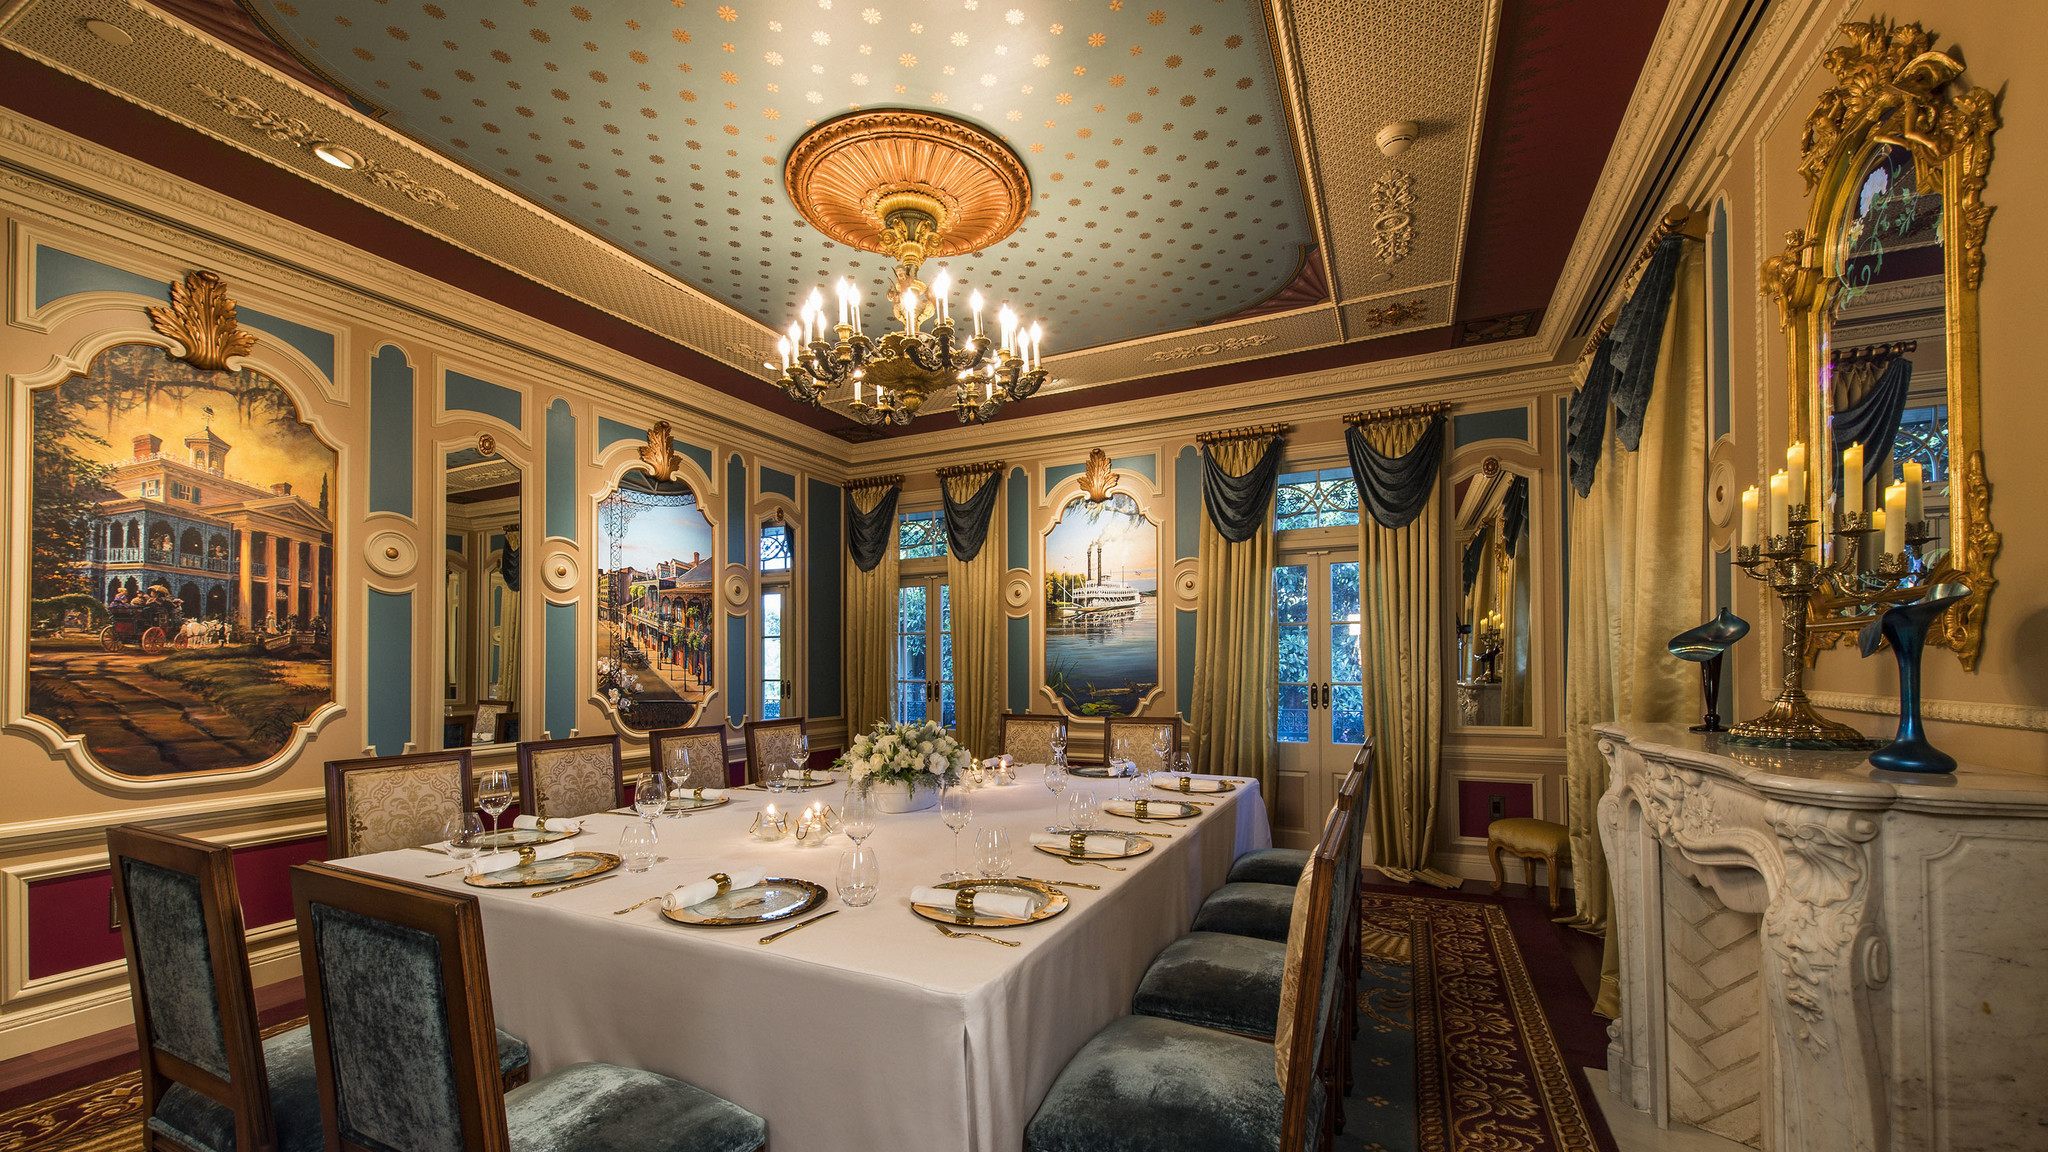 Seven Course Meal At Private Disneyland Dining Room Comes